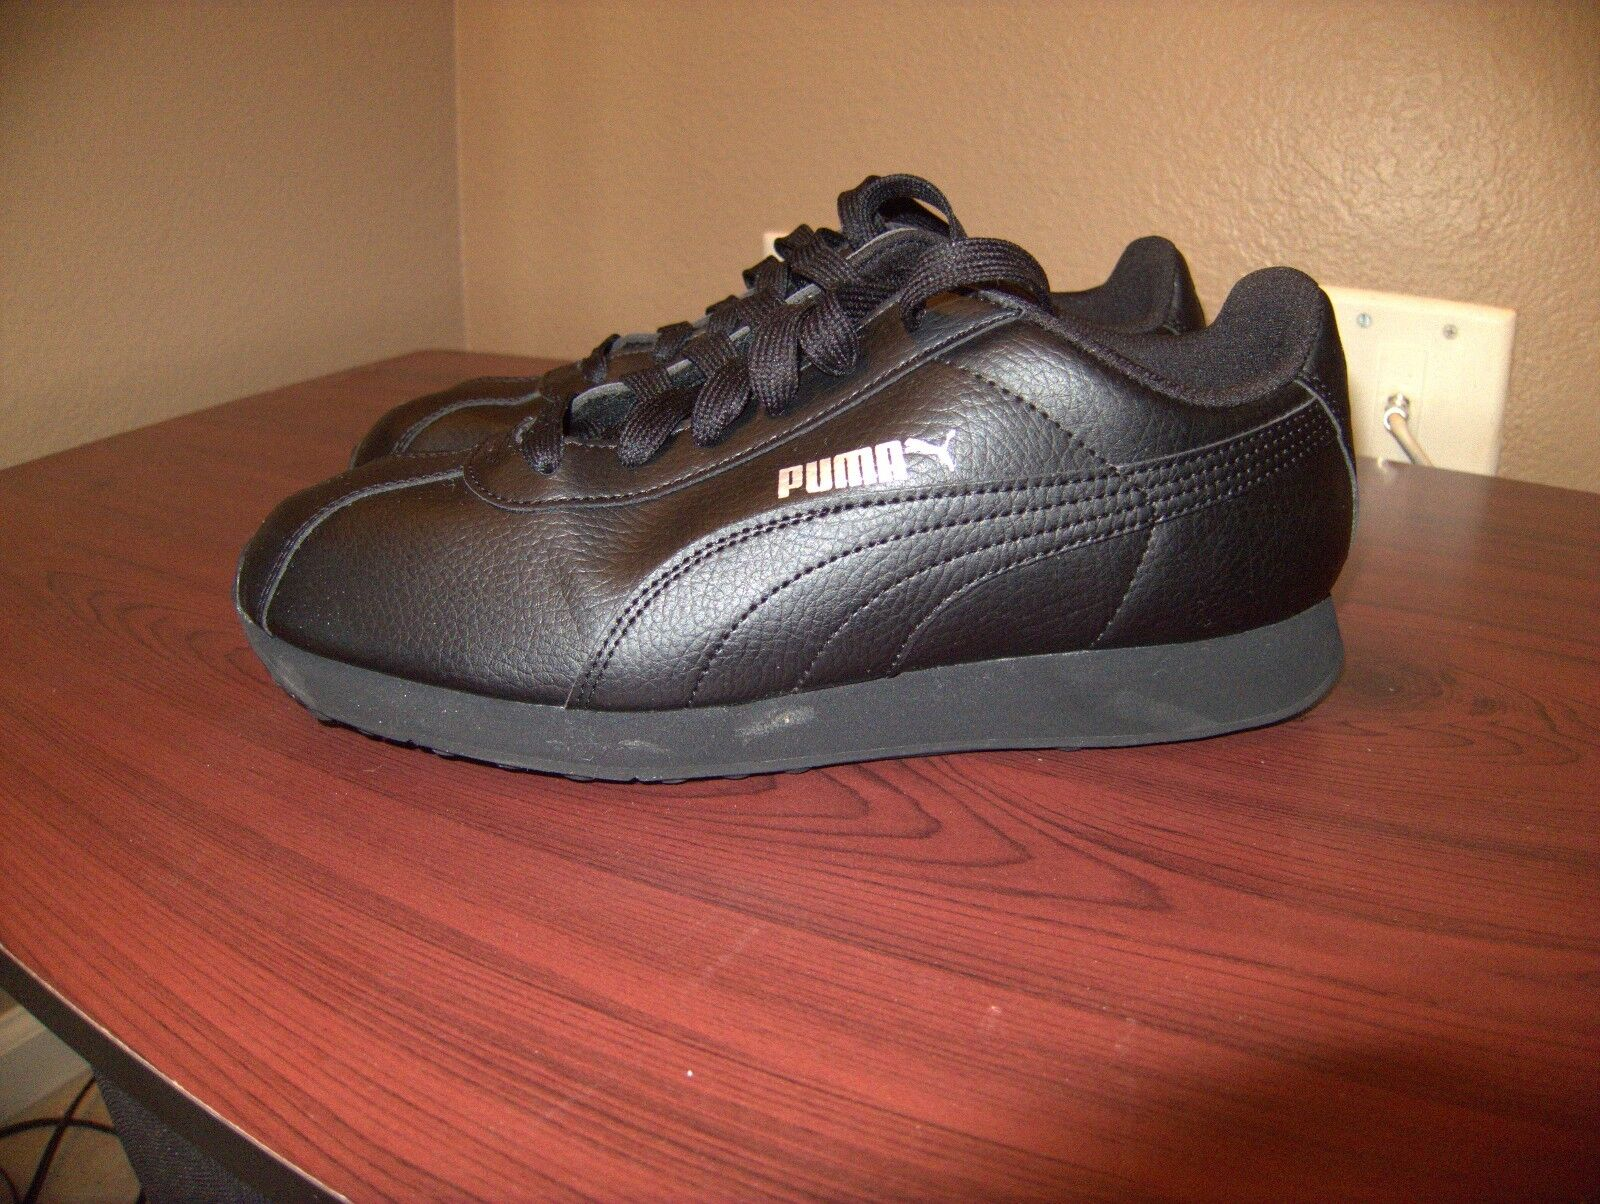 Slightly Used PUMA Black, Turin Men's Shoes Sneakers, Black, PUMA Size 8.5 31249f